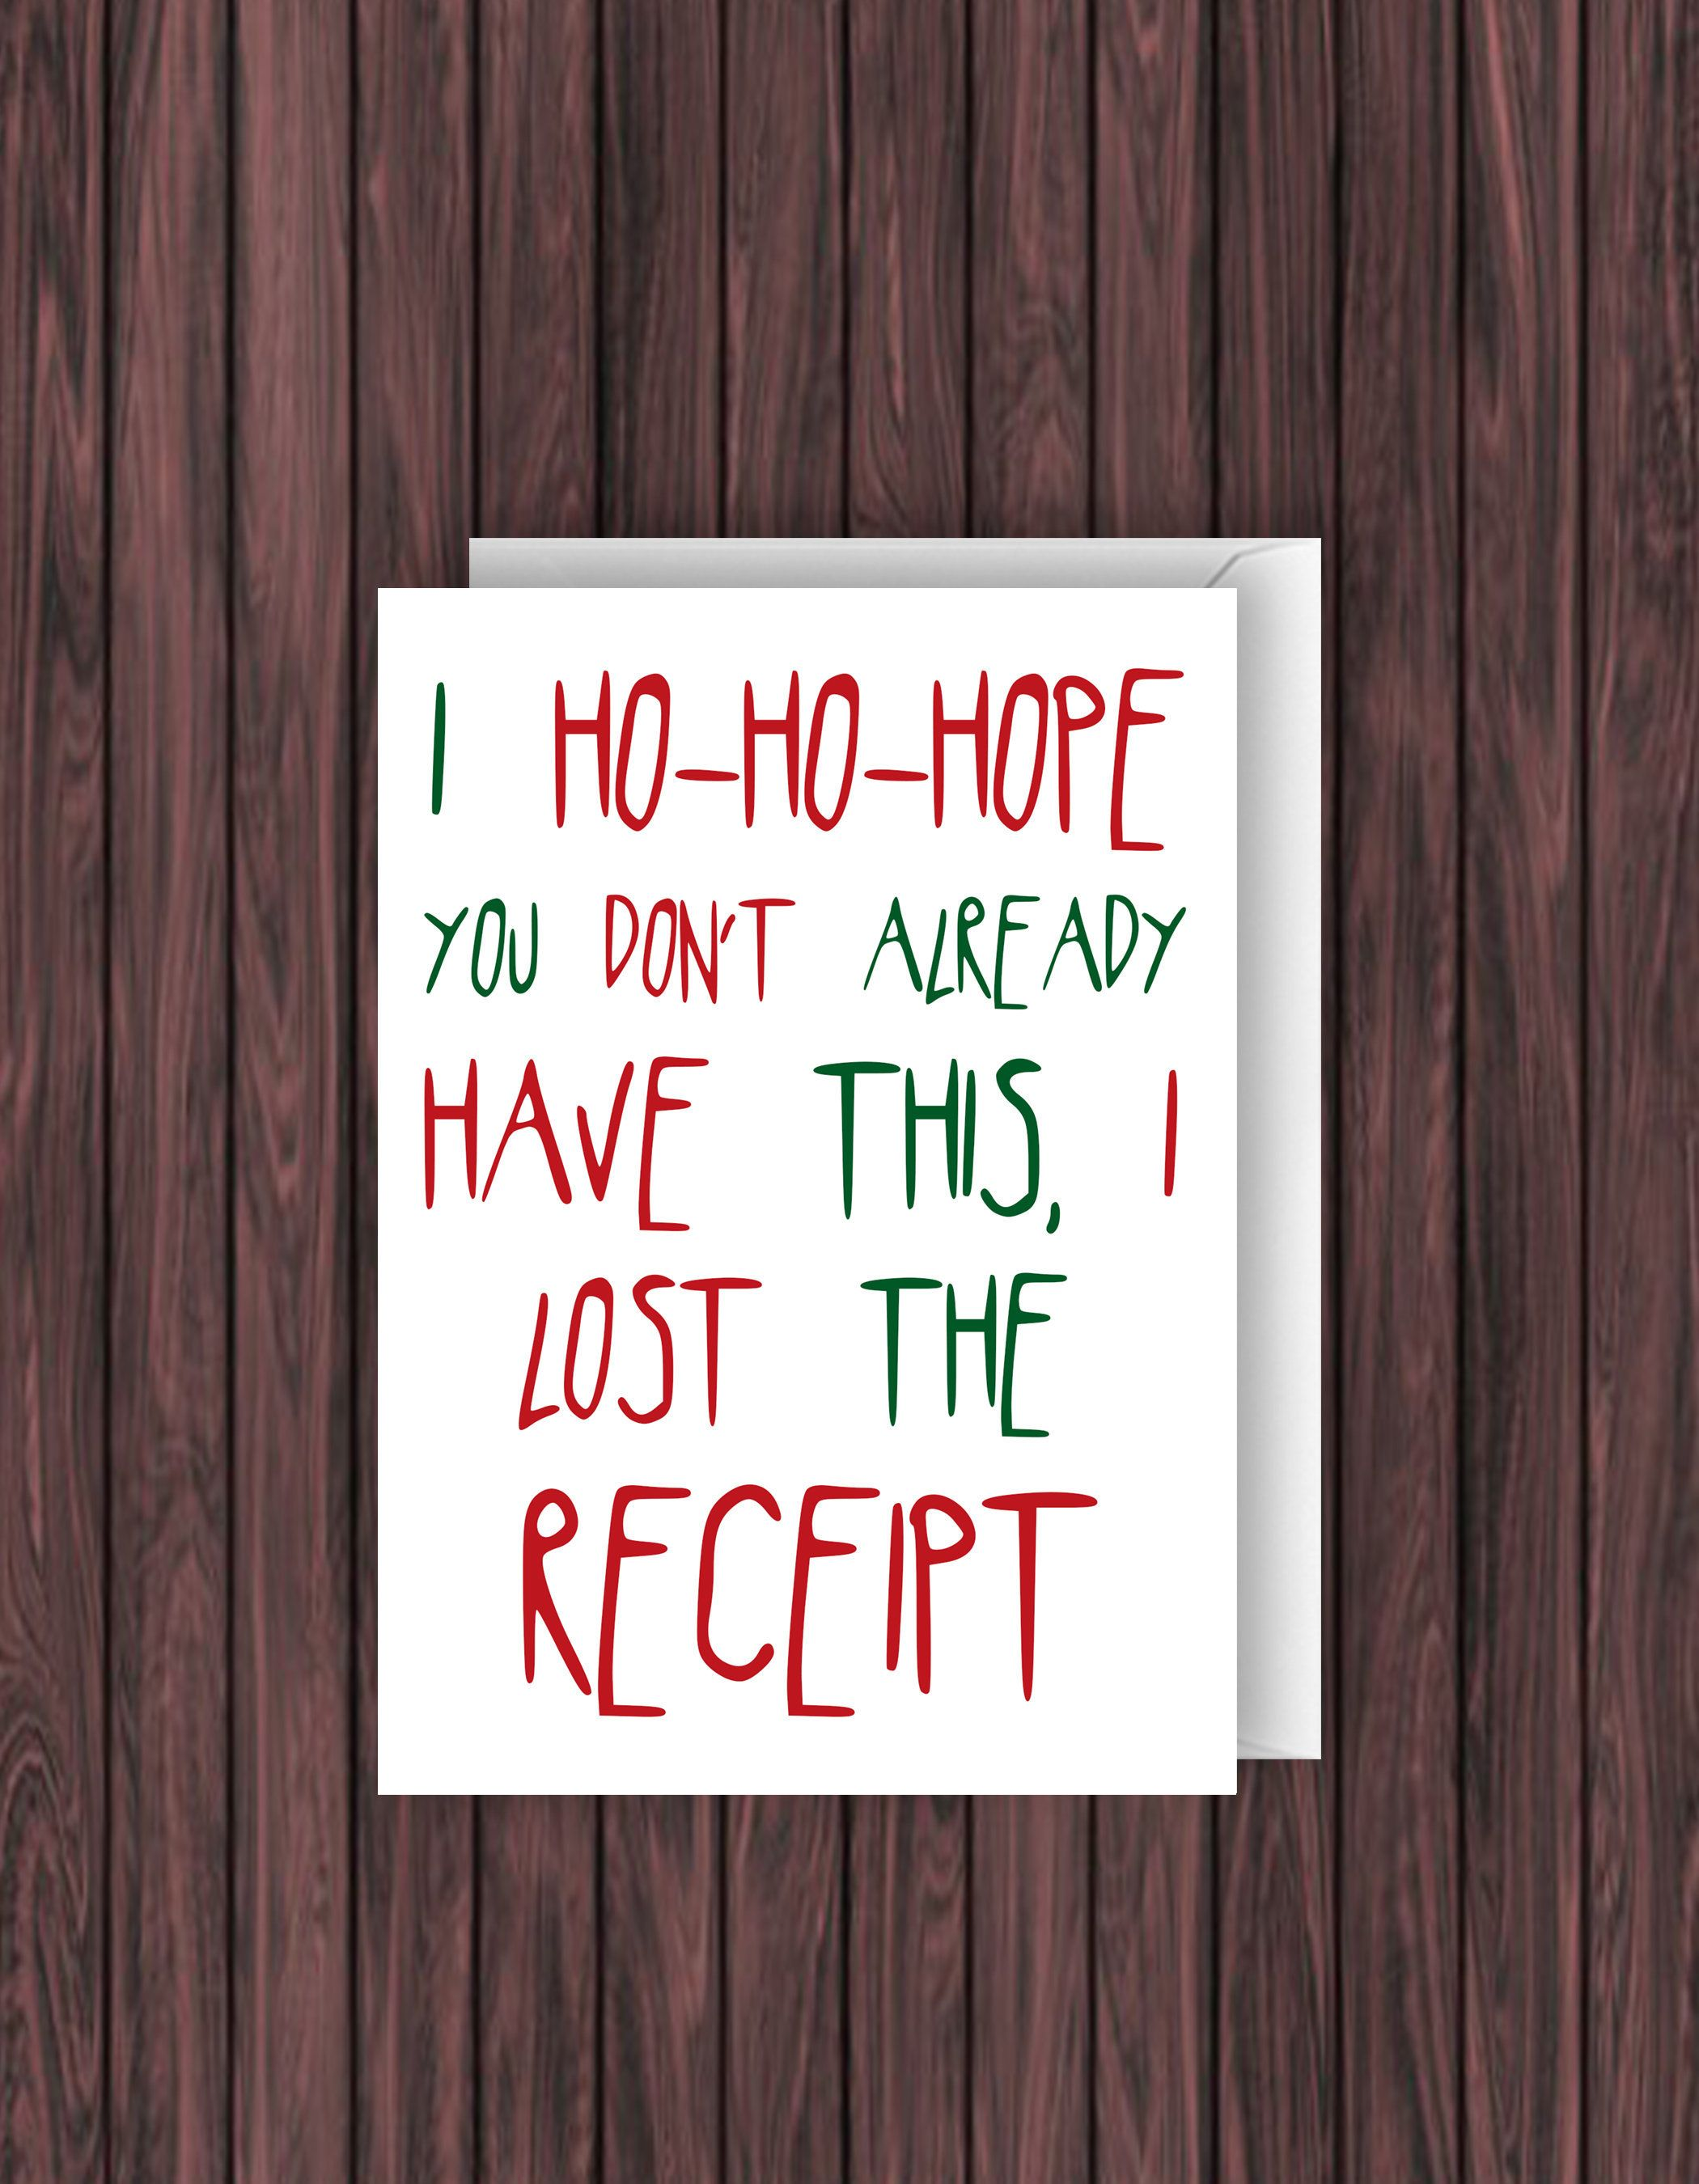 Lost Receipt Christmas Card. Funny Christmas Card. Holiday